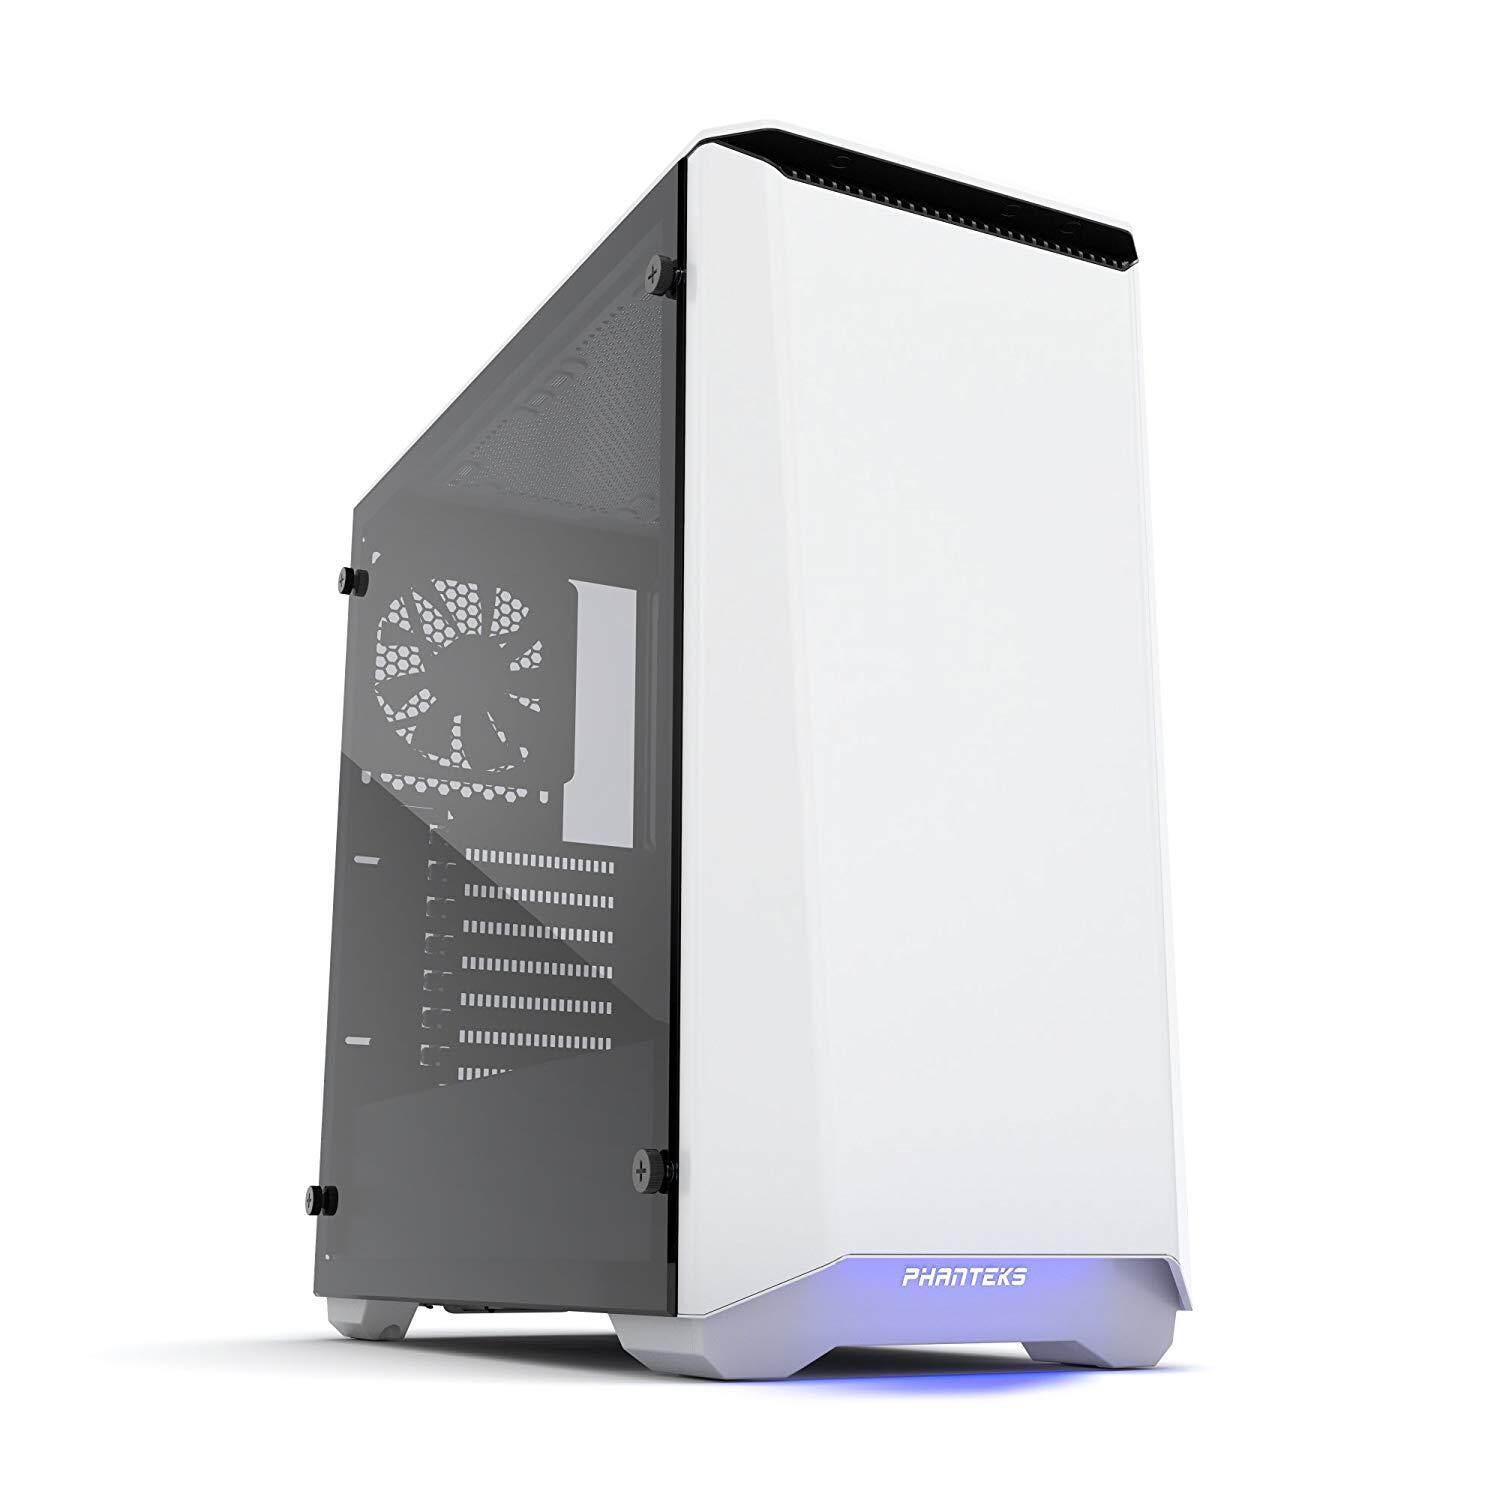 PHANTEKS ECLIPSE P400 TEMPERED GLASS WHITE CHASSIS Malaysia